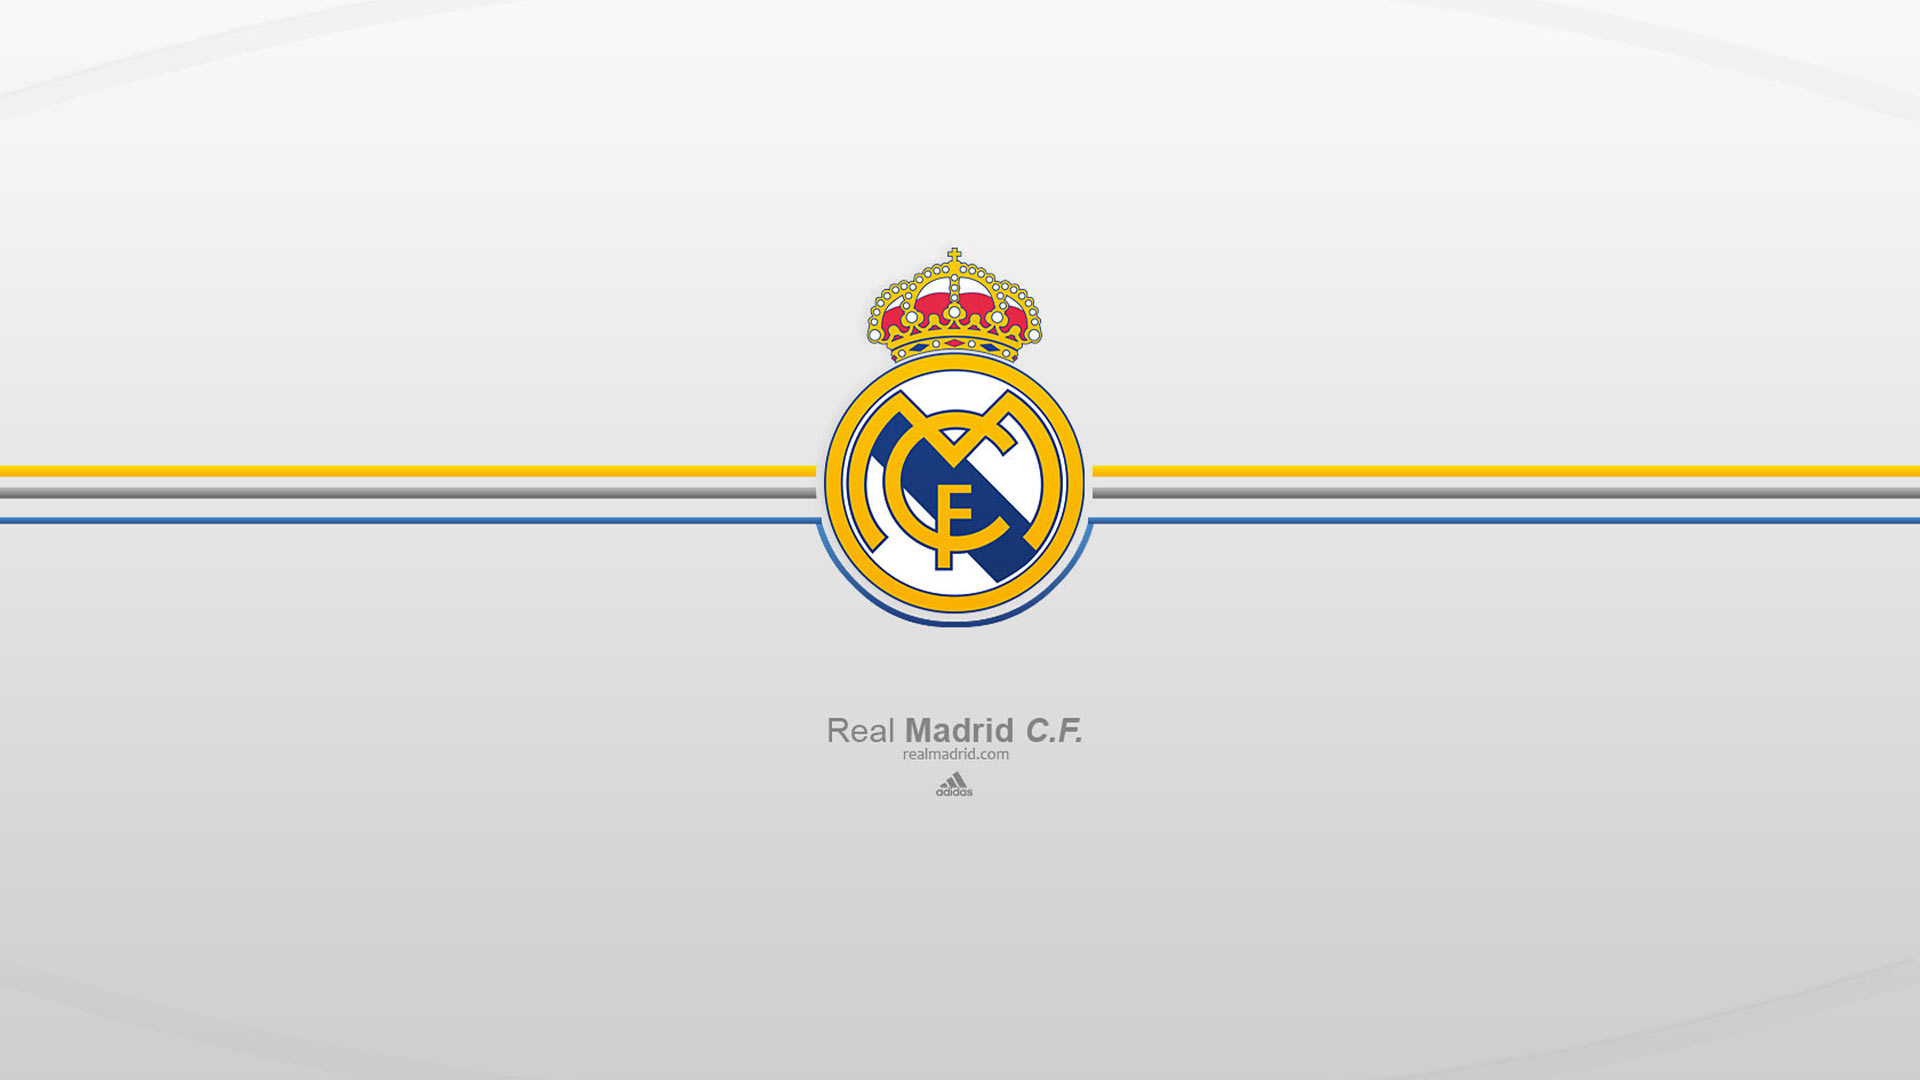 Real Madrid Wallpaper 1920x1080 56521